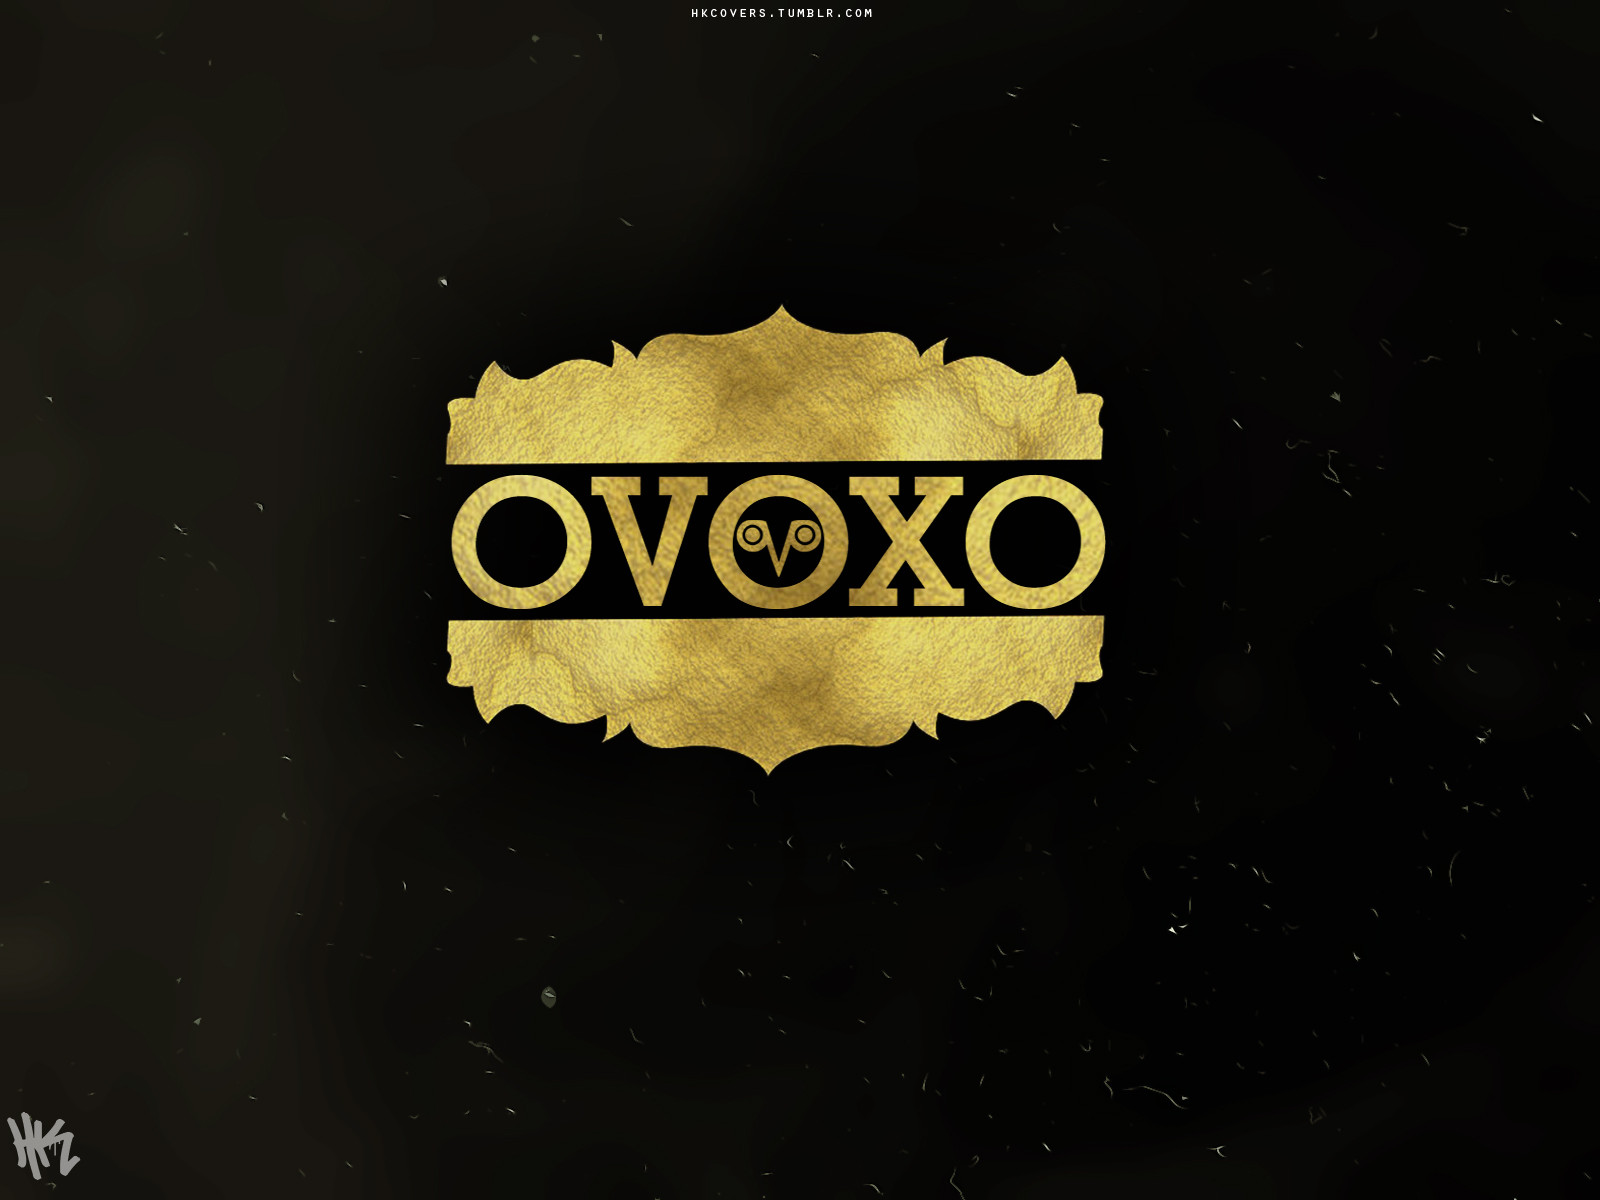 Ovo Logo The logo and everything is 1600x1200